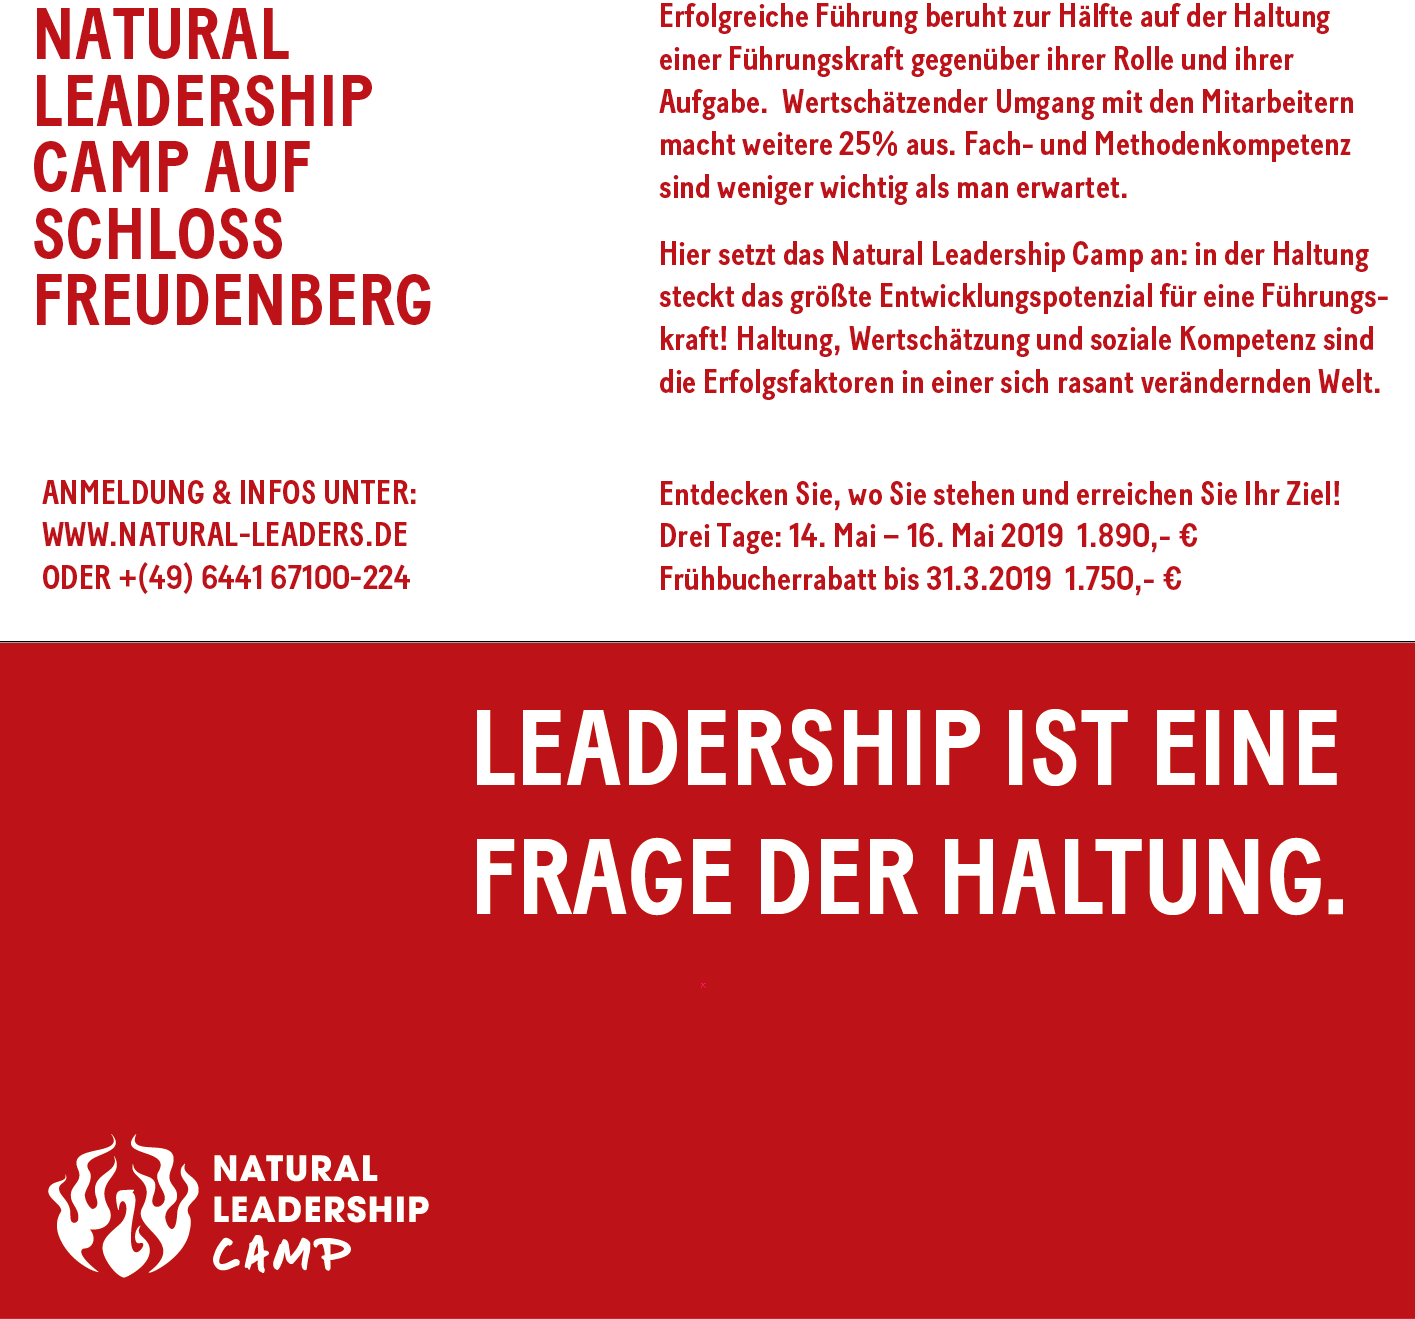 natural-leadership-camp ute Tiegs und Wolf Lüdge